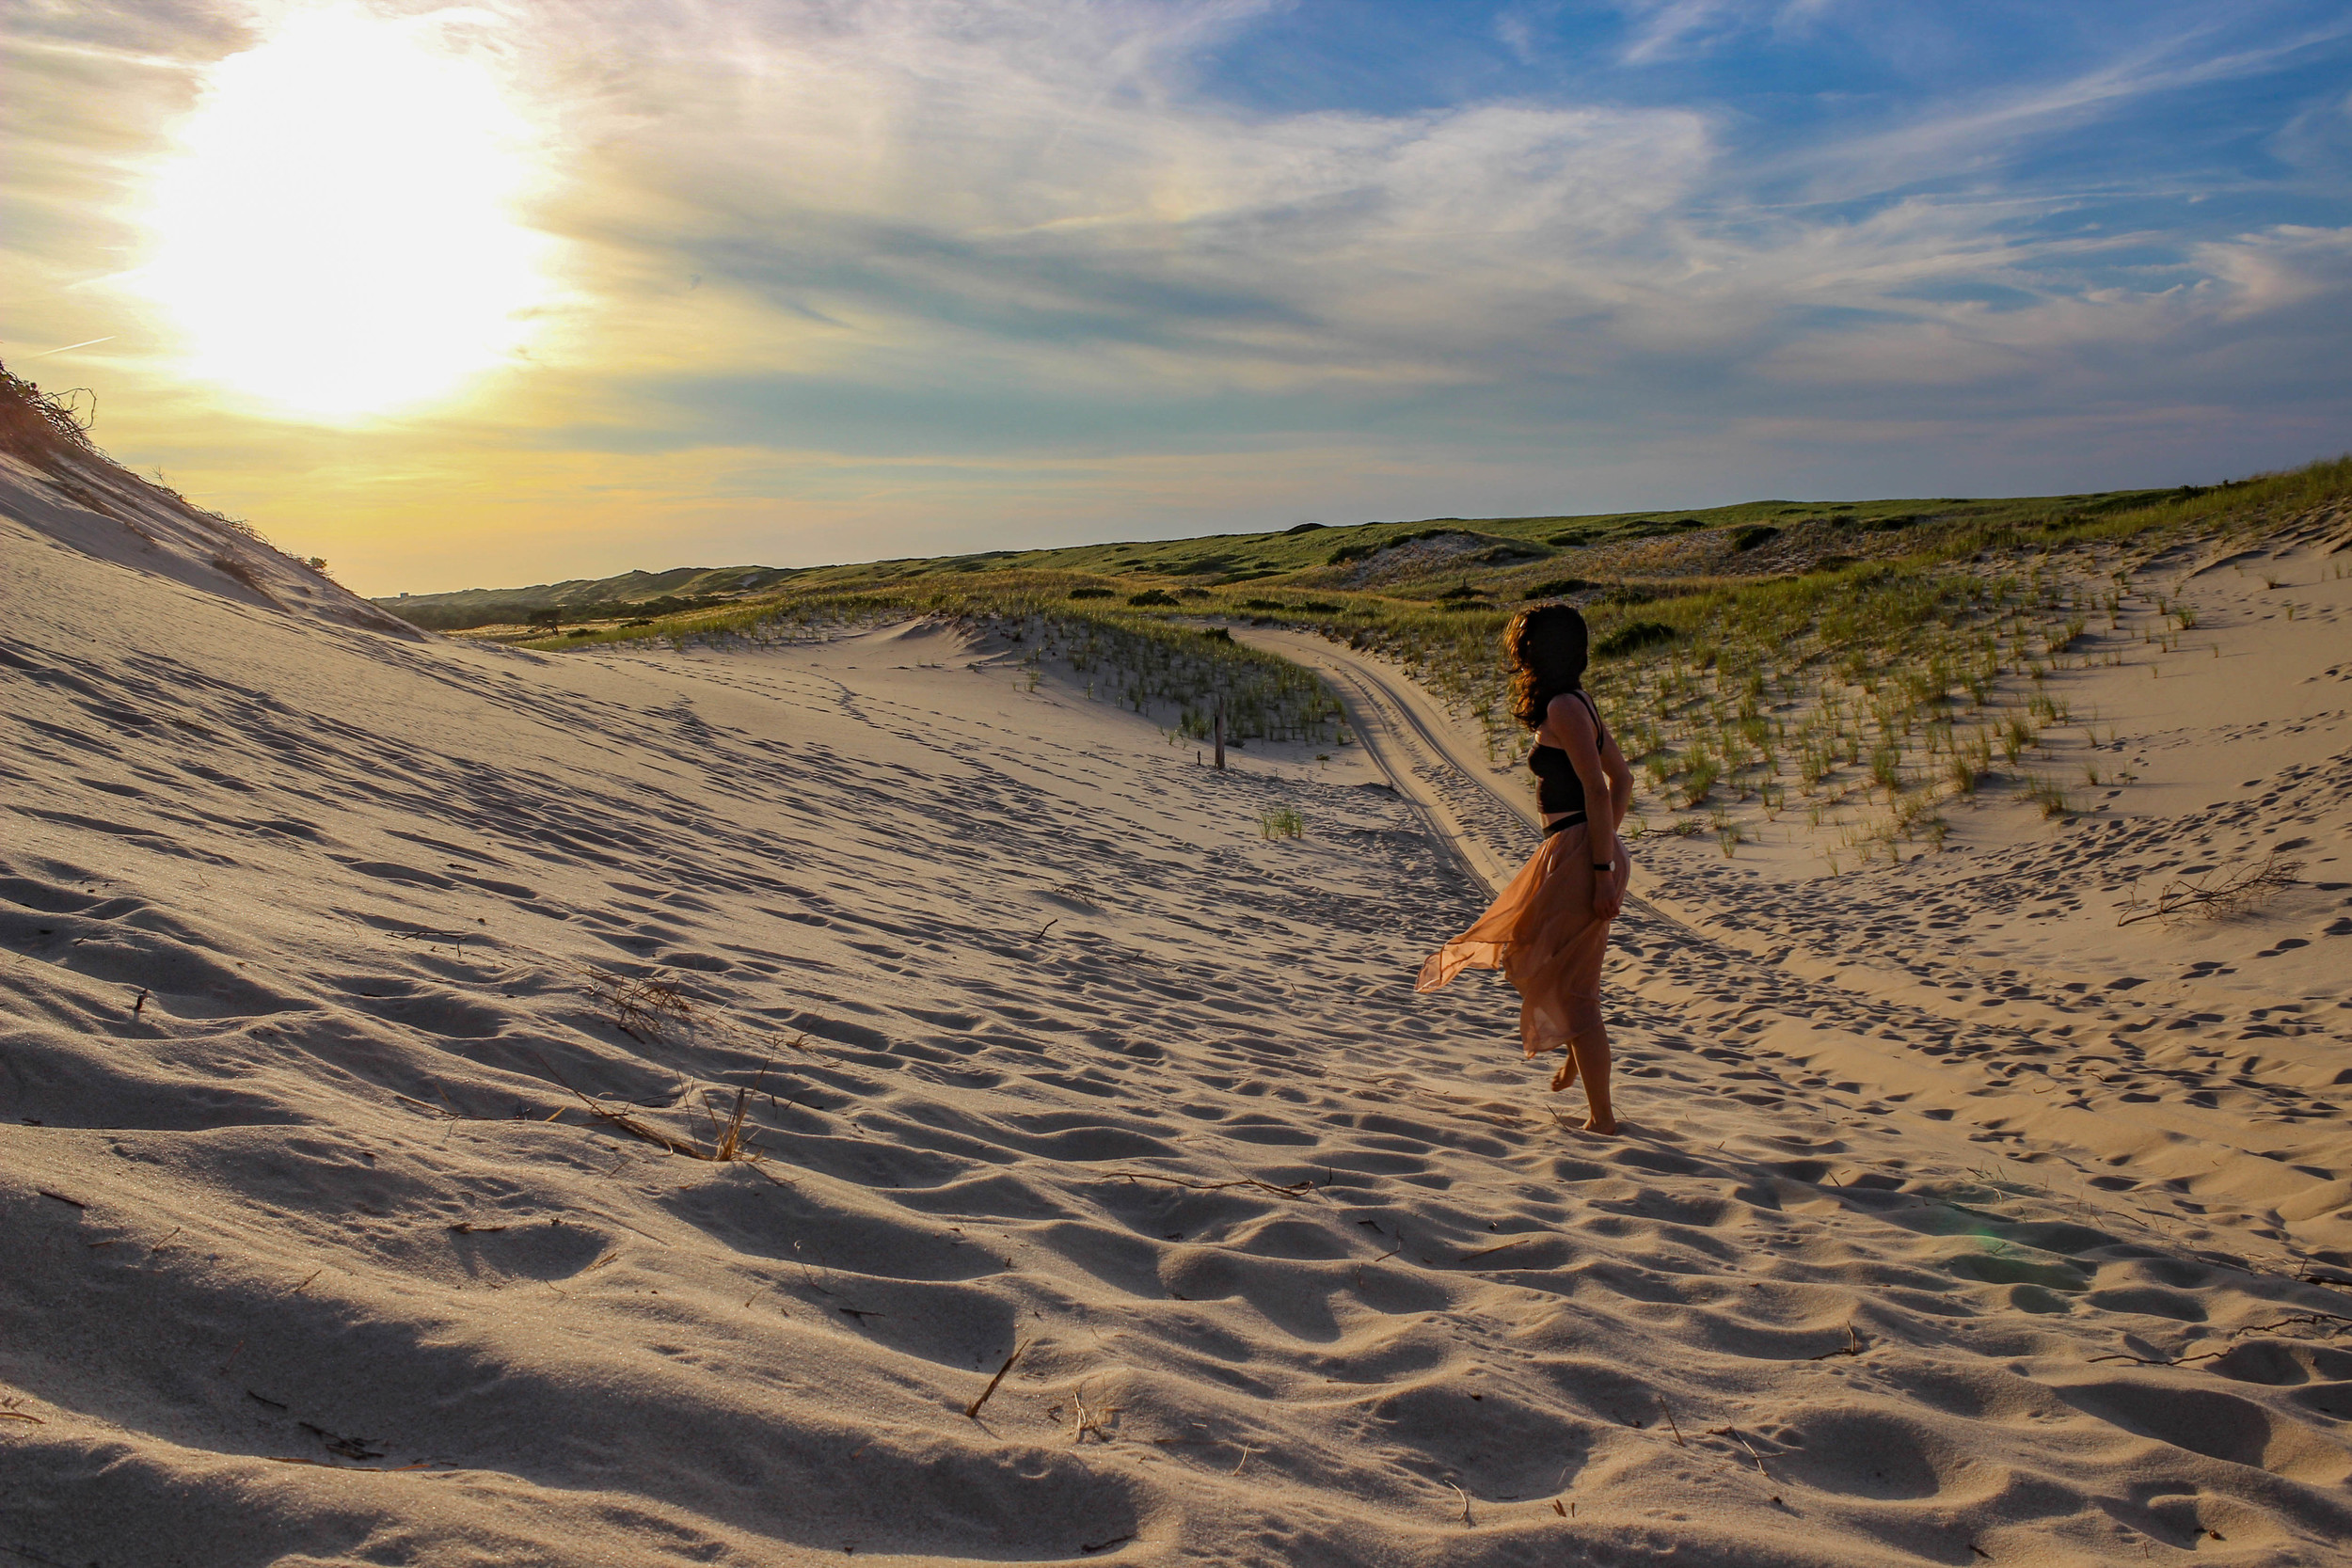 HOW TO CREATE A LIFE CHANGING CAPE COD ADVENTURE TRIP